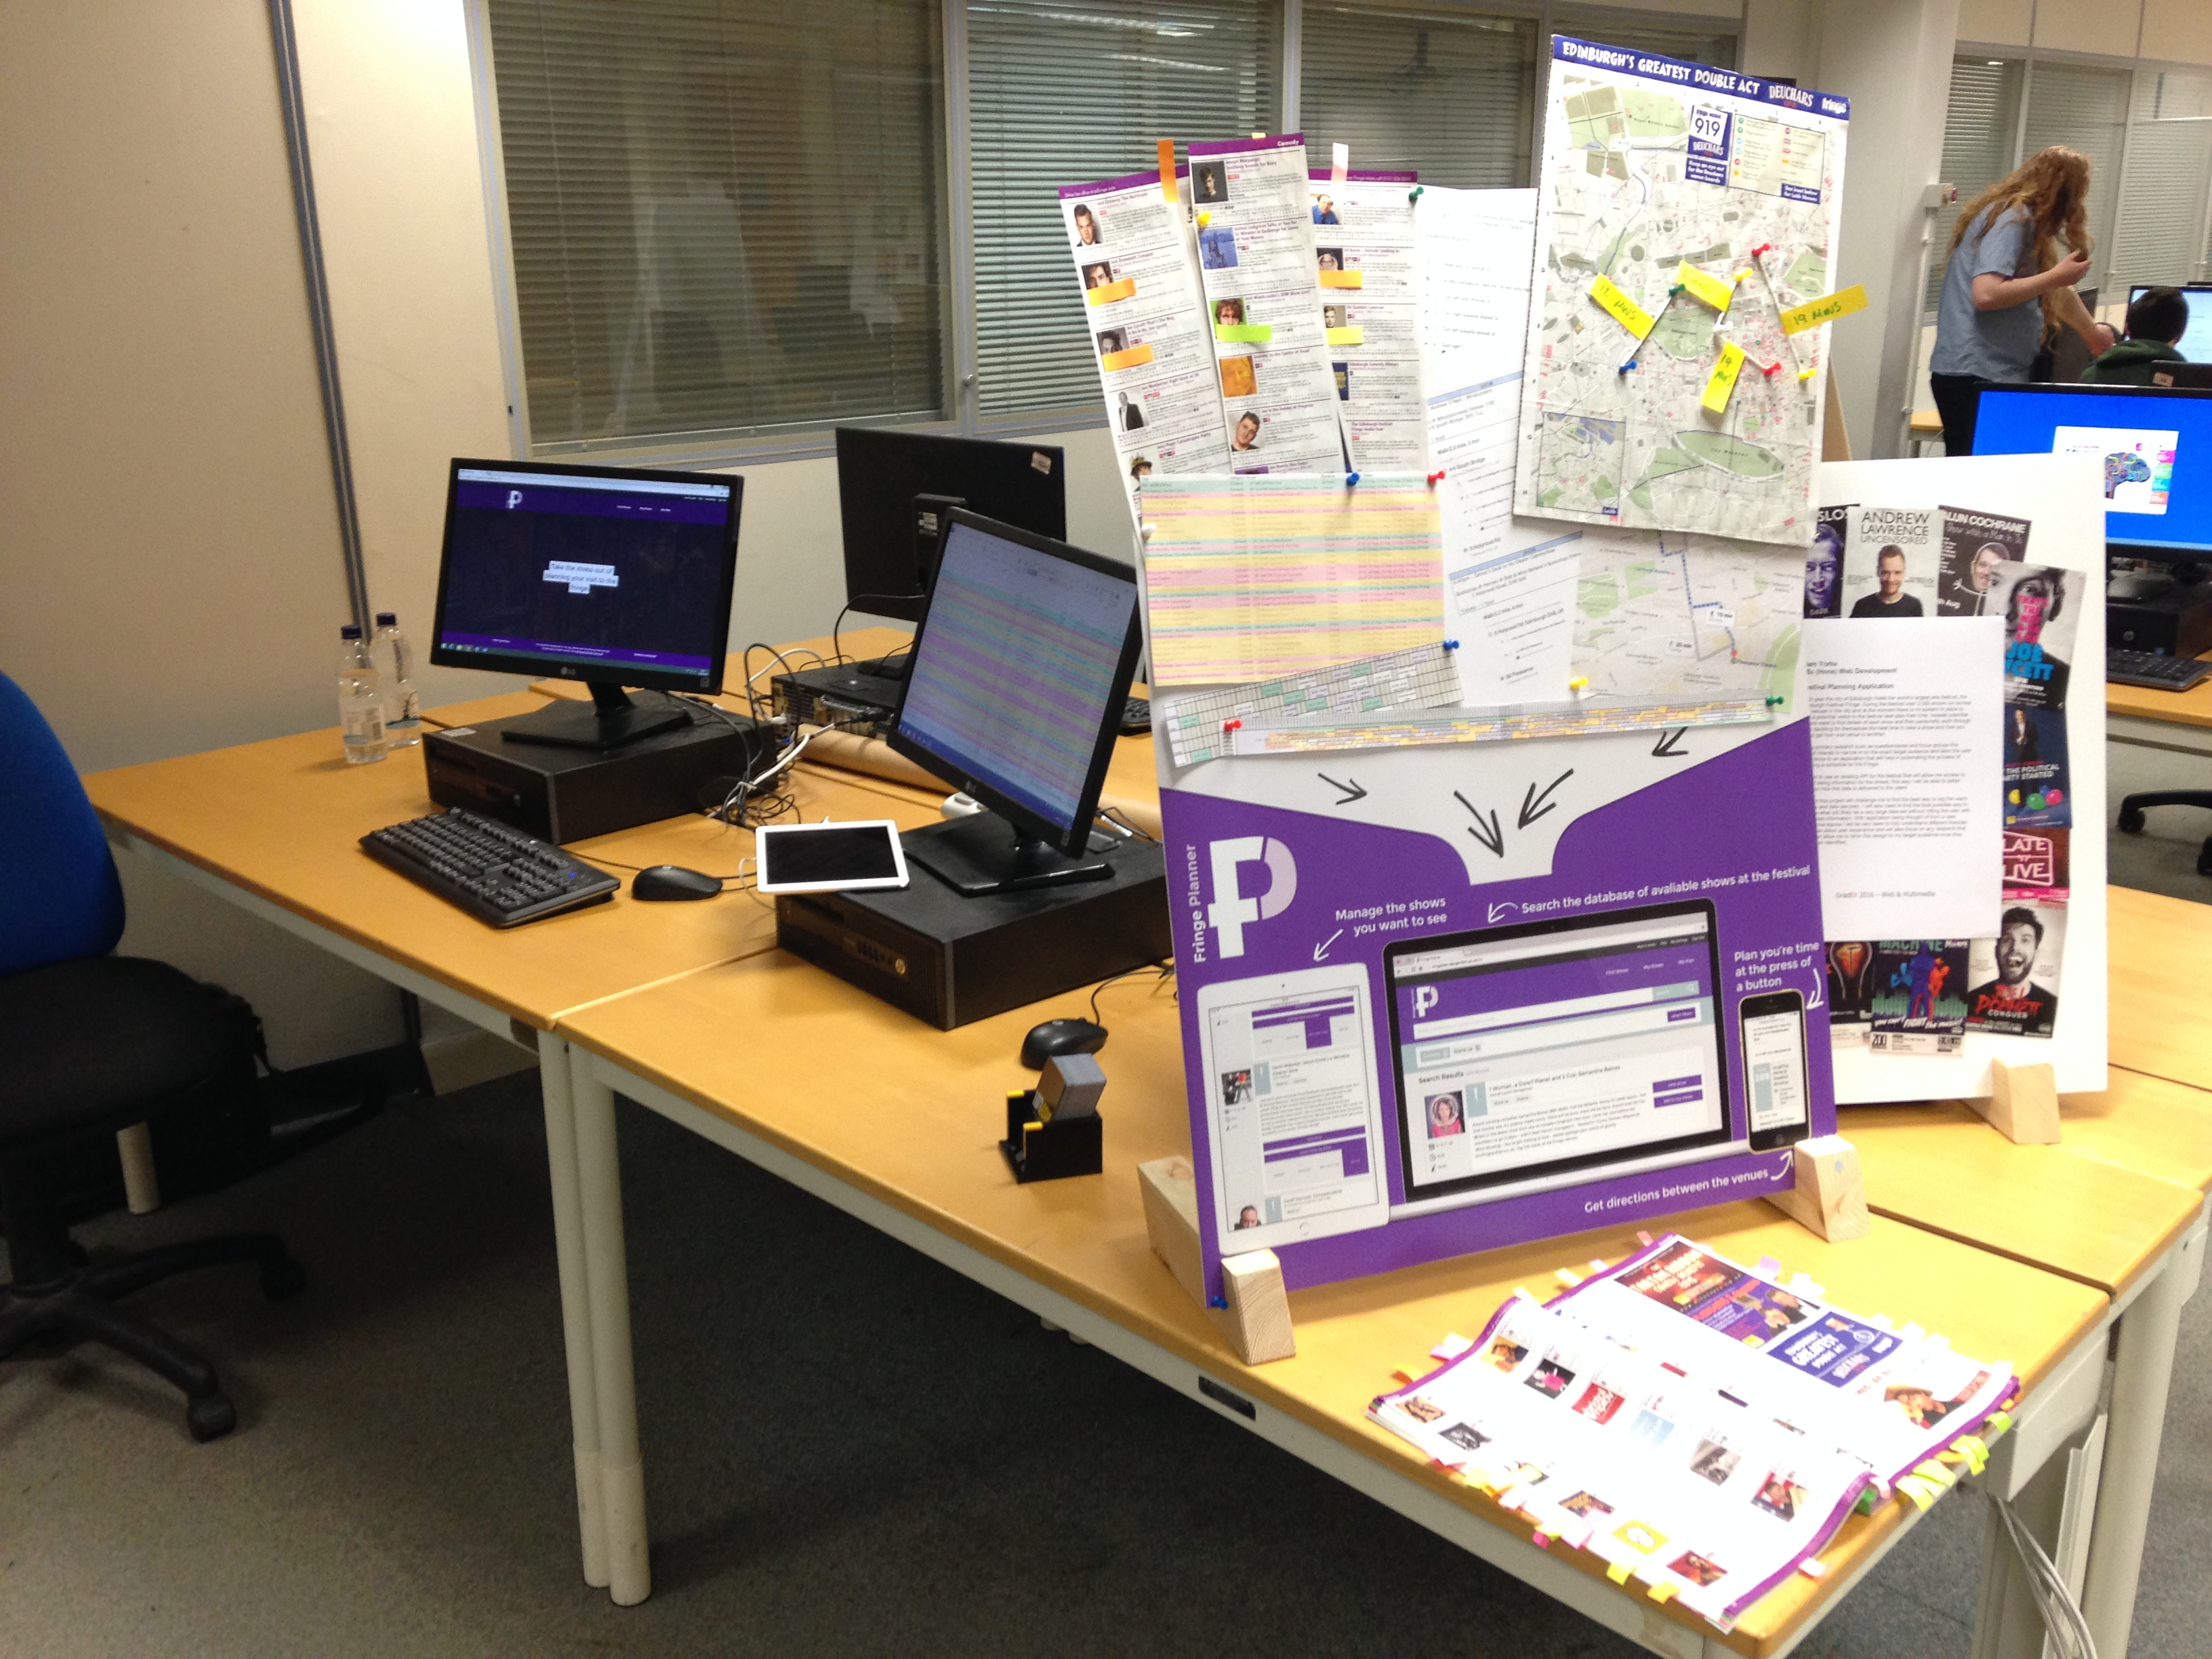 The Grad-Ex display of my FYP